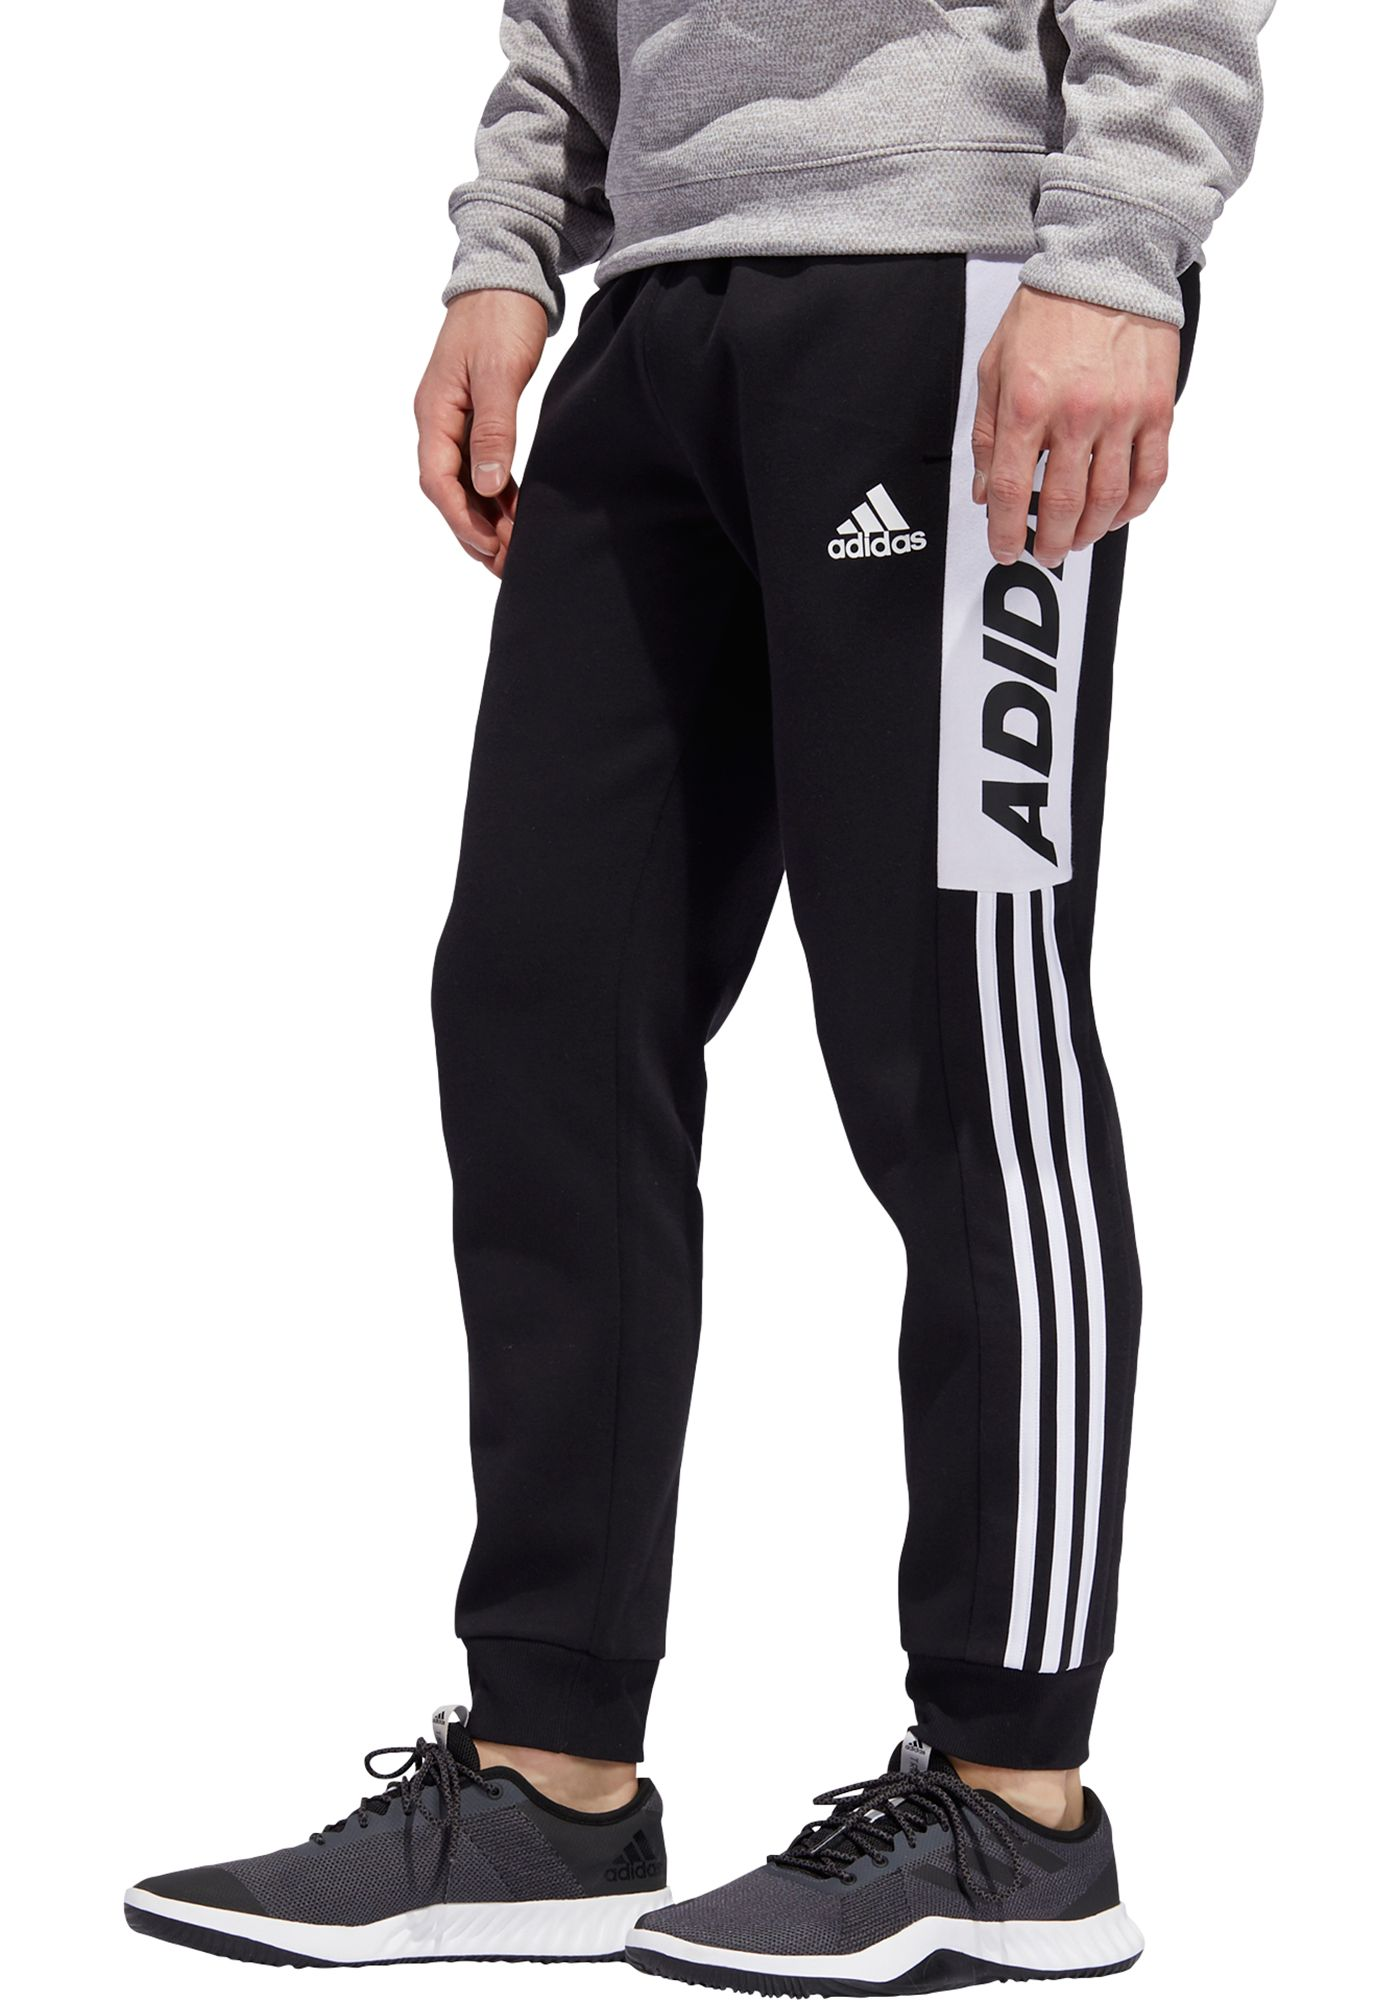 adidas Men's Post Game 7/8 Jogger Pants